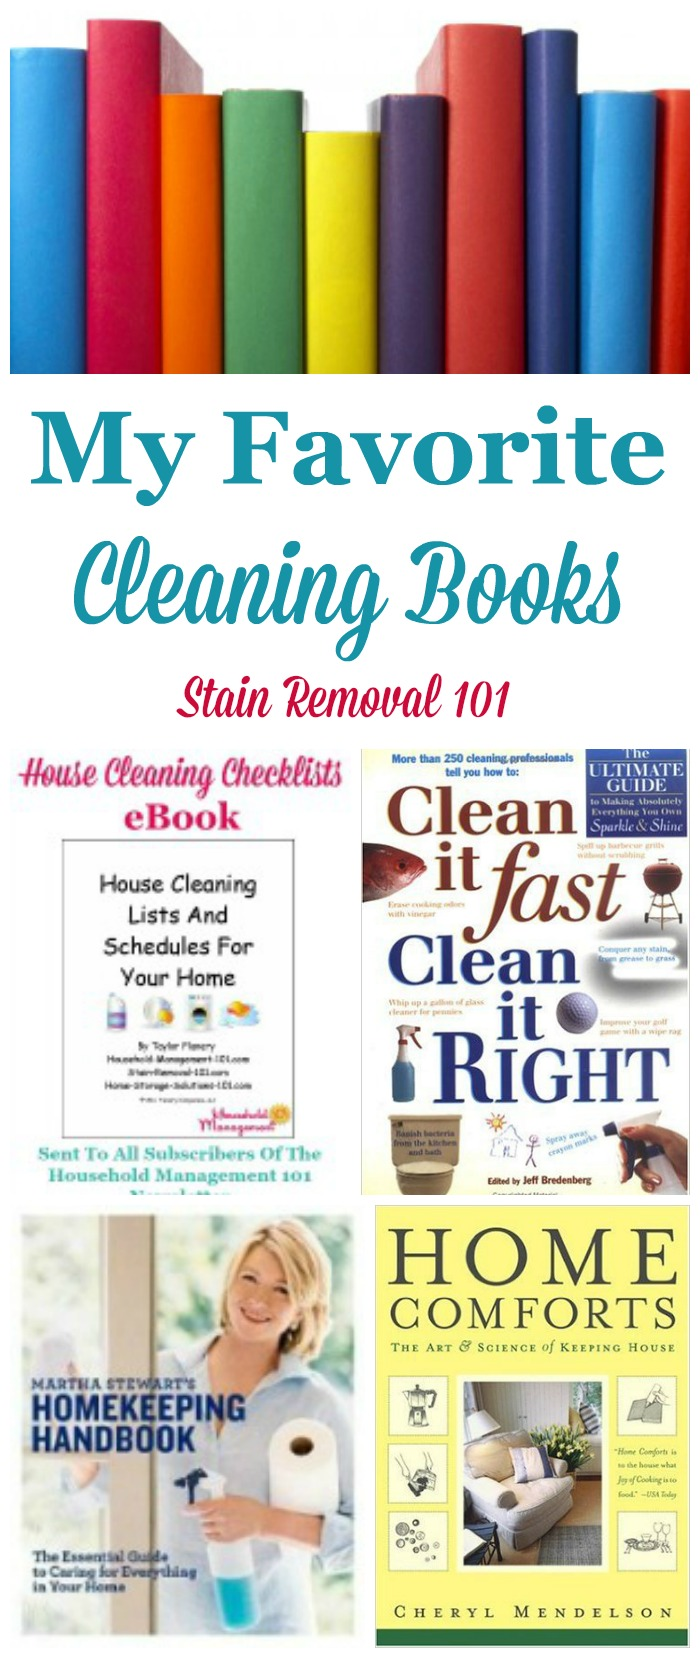 It's nice to have resources when you've got a stain or cleaning emergency. Here are my favorite stain removal and house cleaning books, to make sure you've got the best information on hand. {on Stain Removal 101}